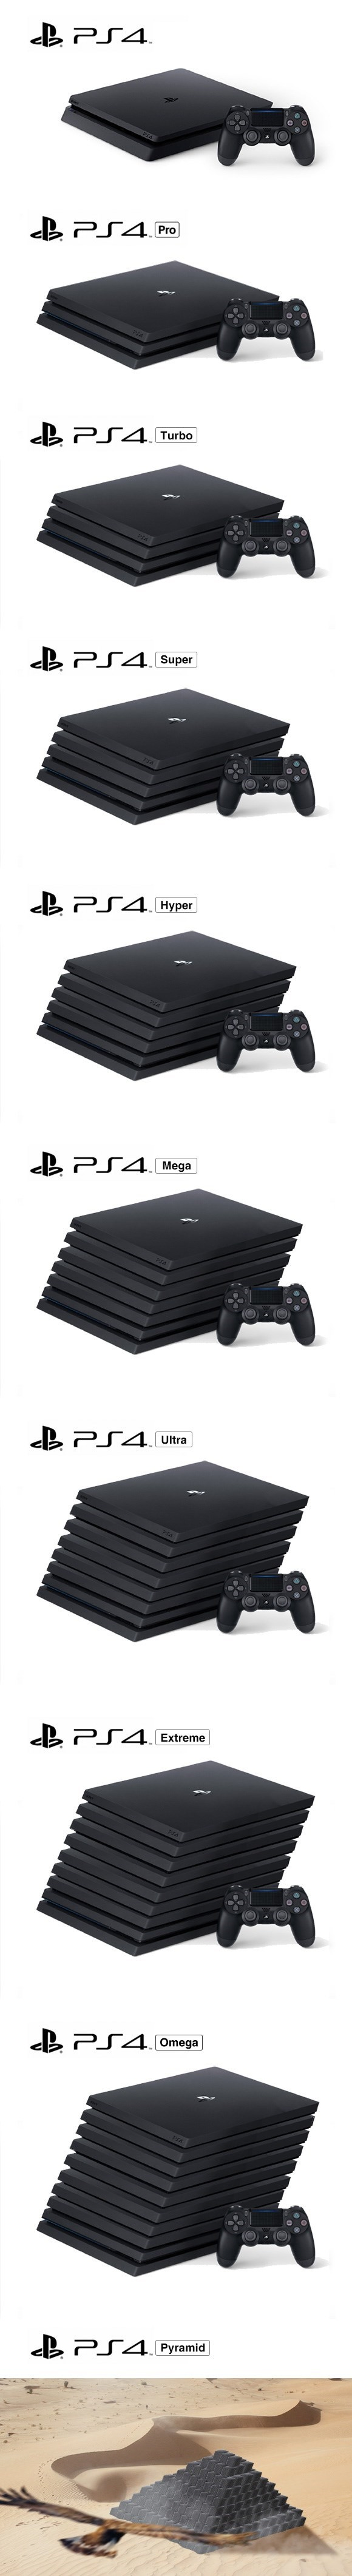 evolution-of-playstation-4-console